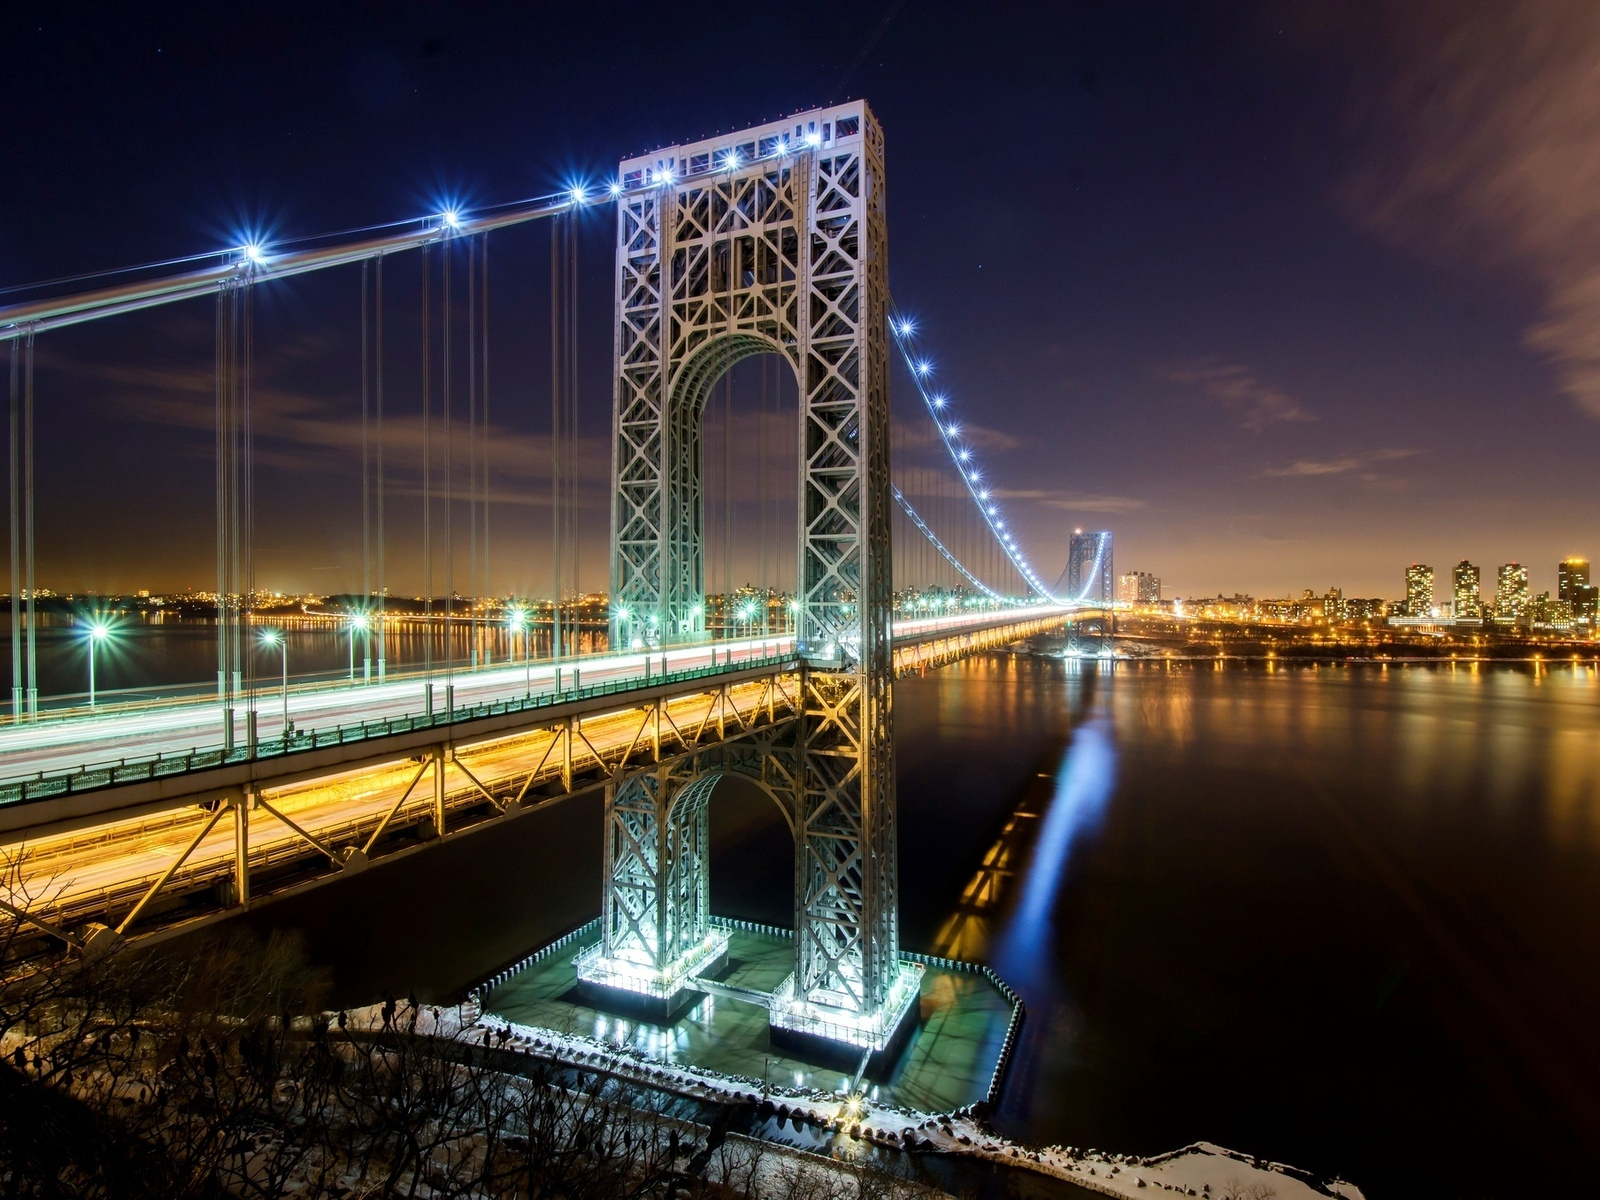 nyc, new york city, manhattan, george washington bridge, usa, hudson river, new jersey